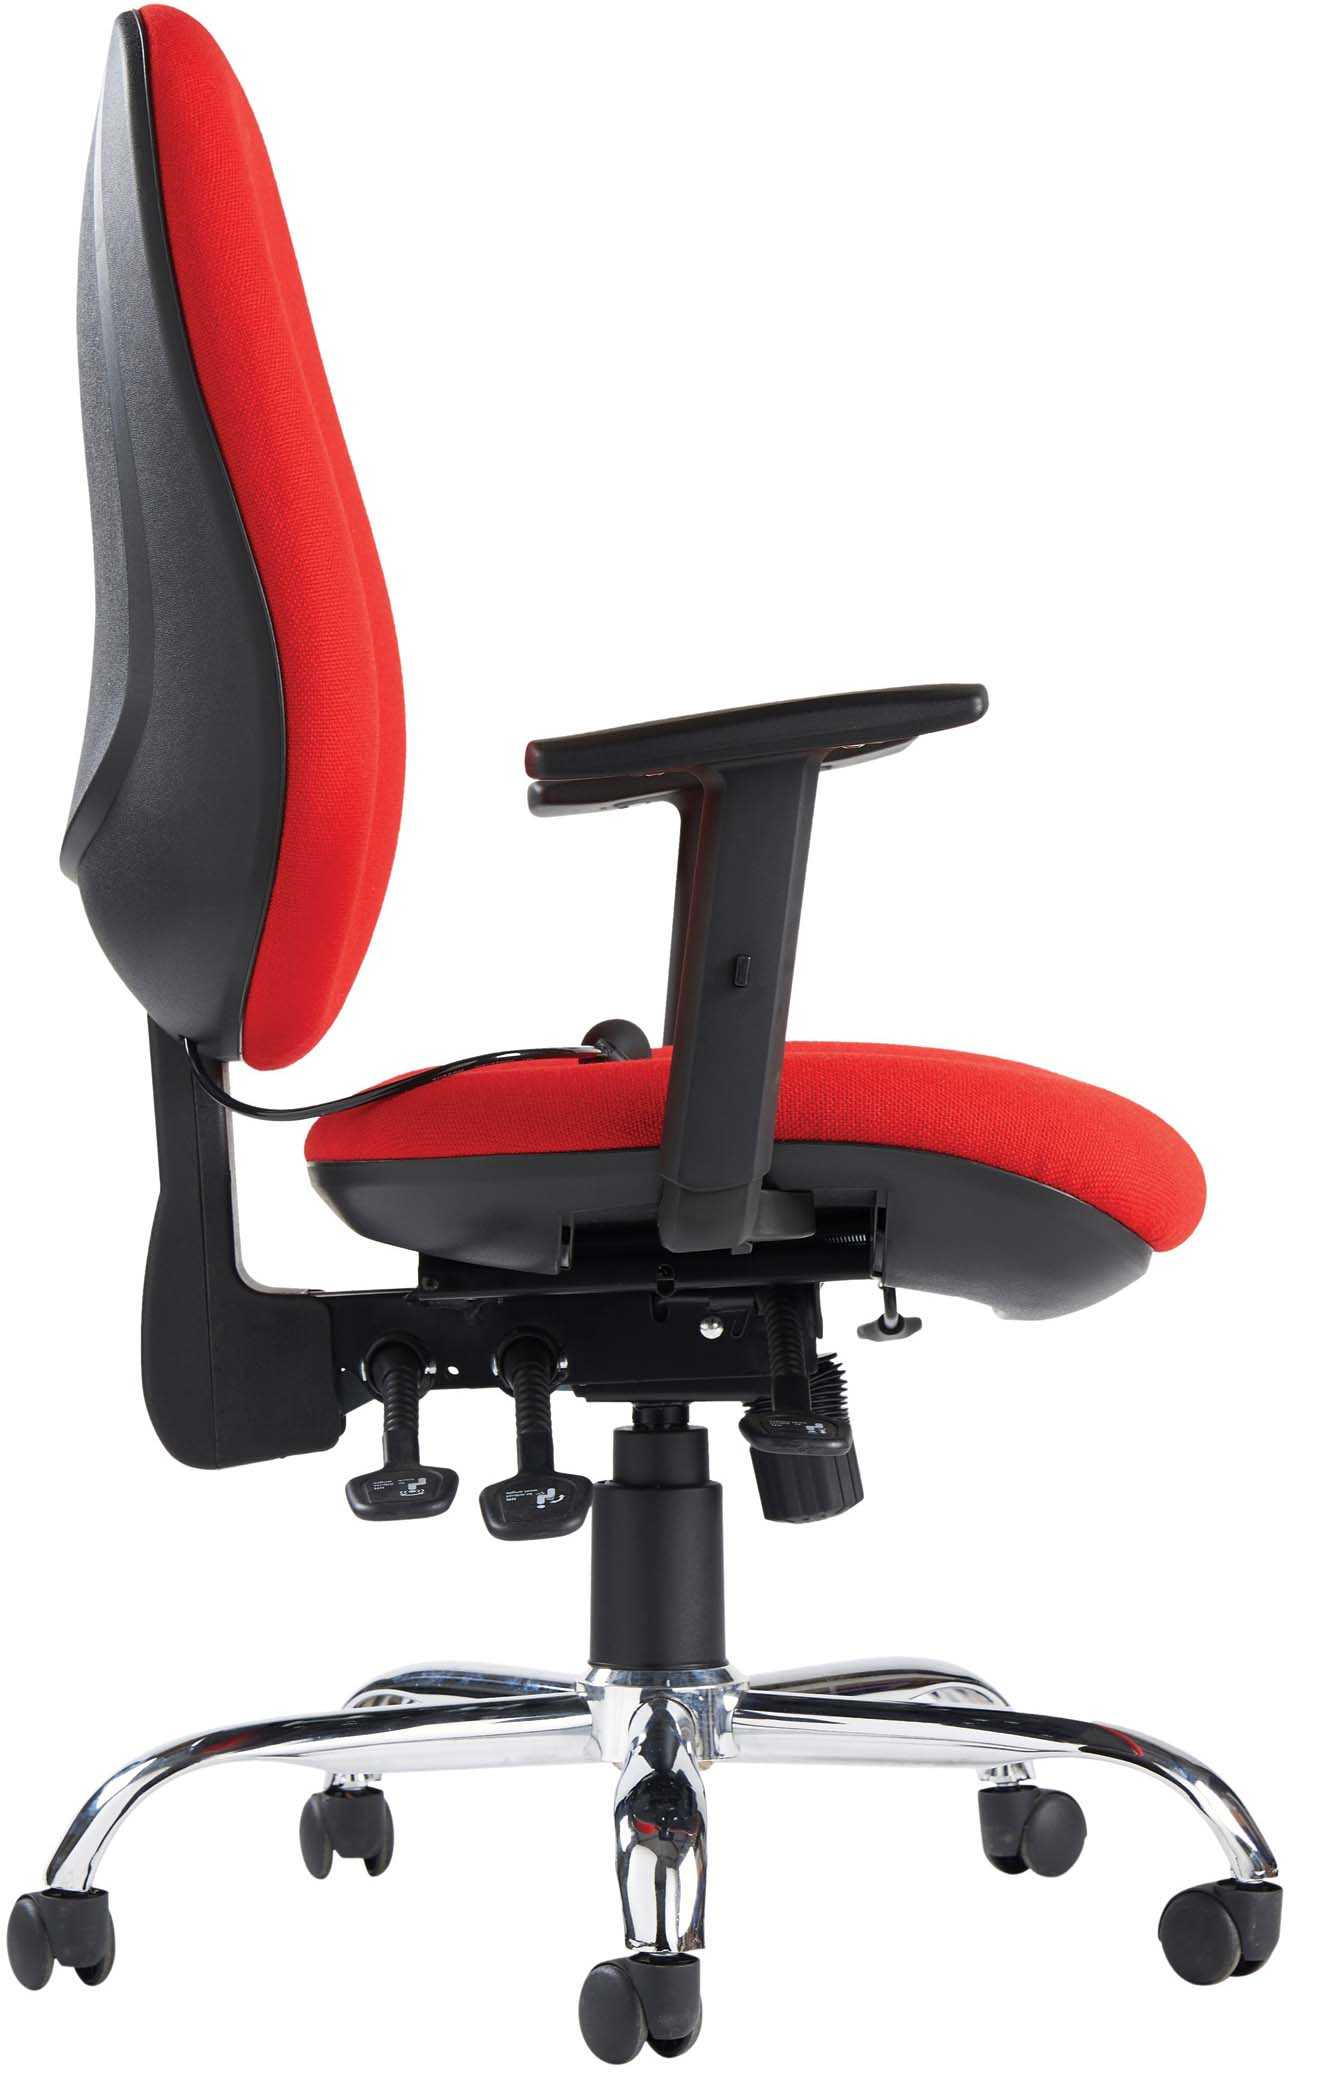 24 Hour Office Chairs Jota Ergo 24 Hour Use Office Chair Ideal For Call Centres Hospitals